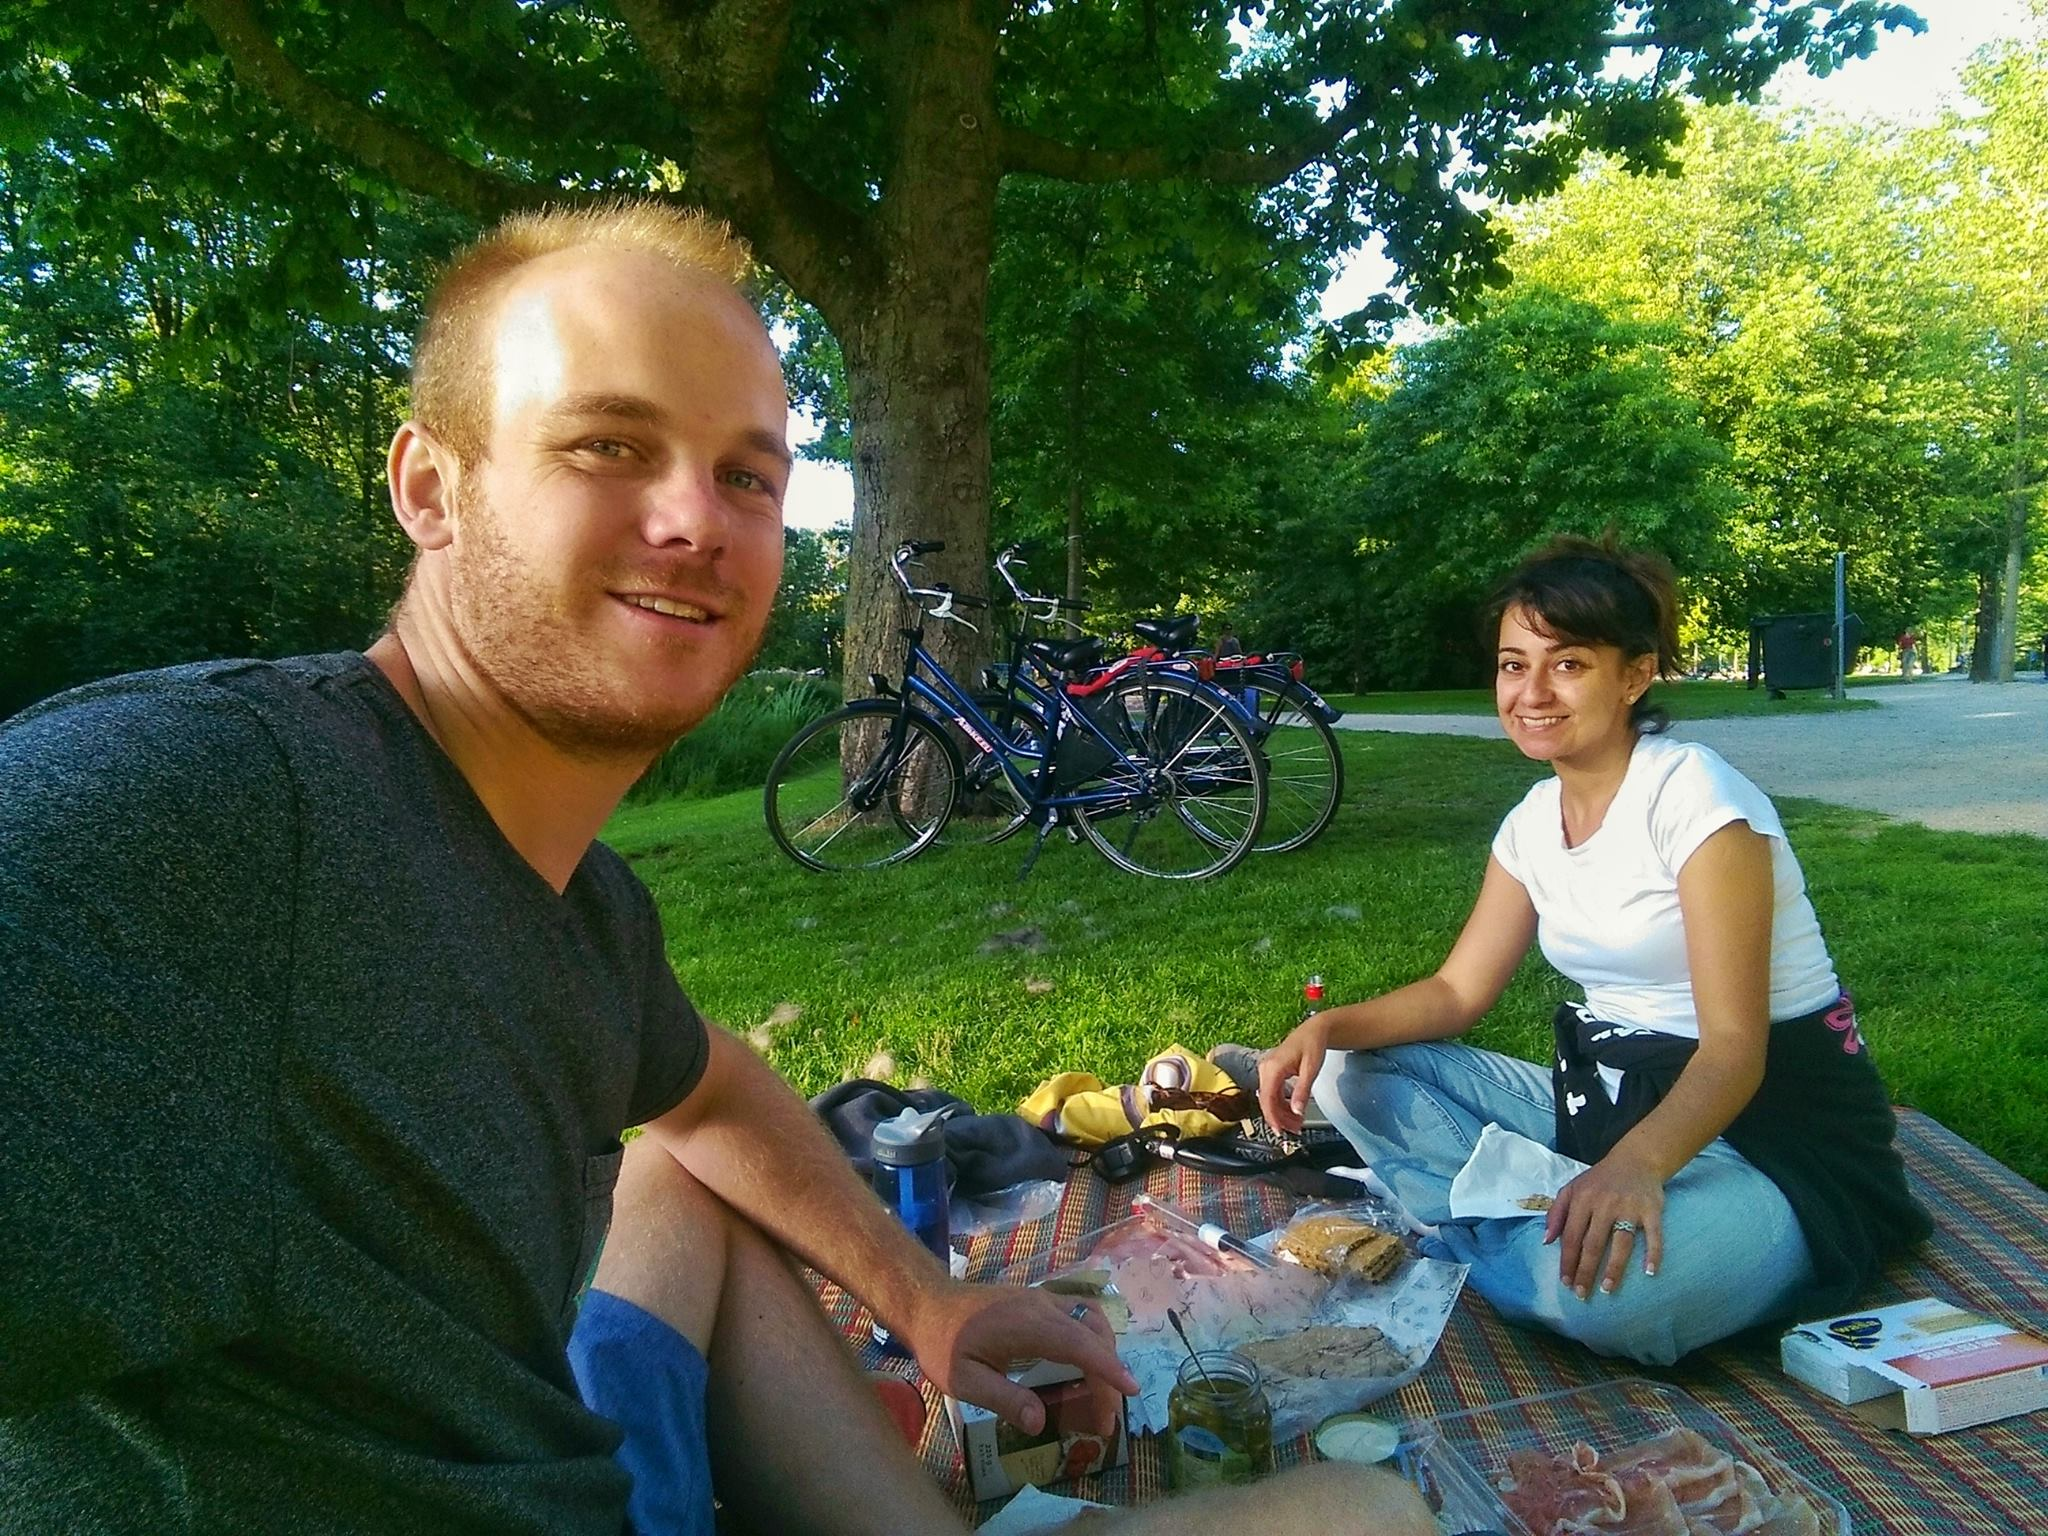 Vondelpark picnic - must do things in Amsterdam